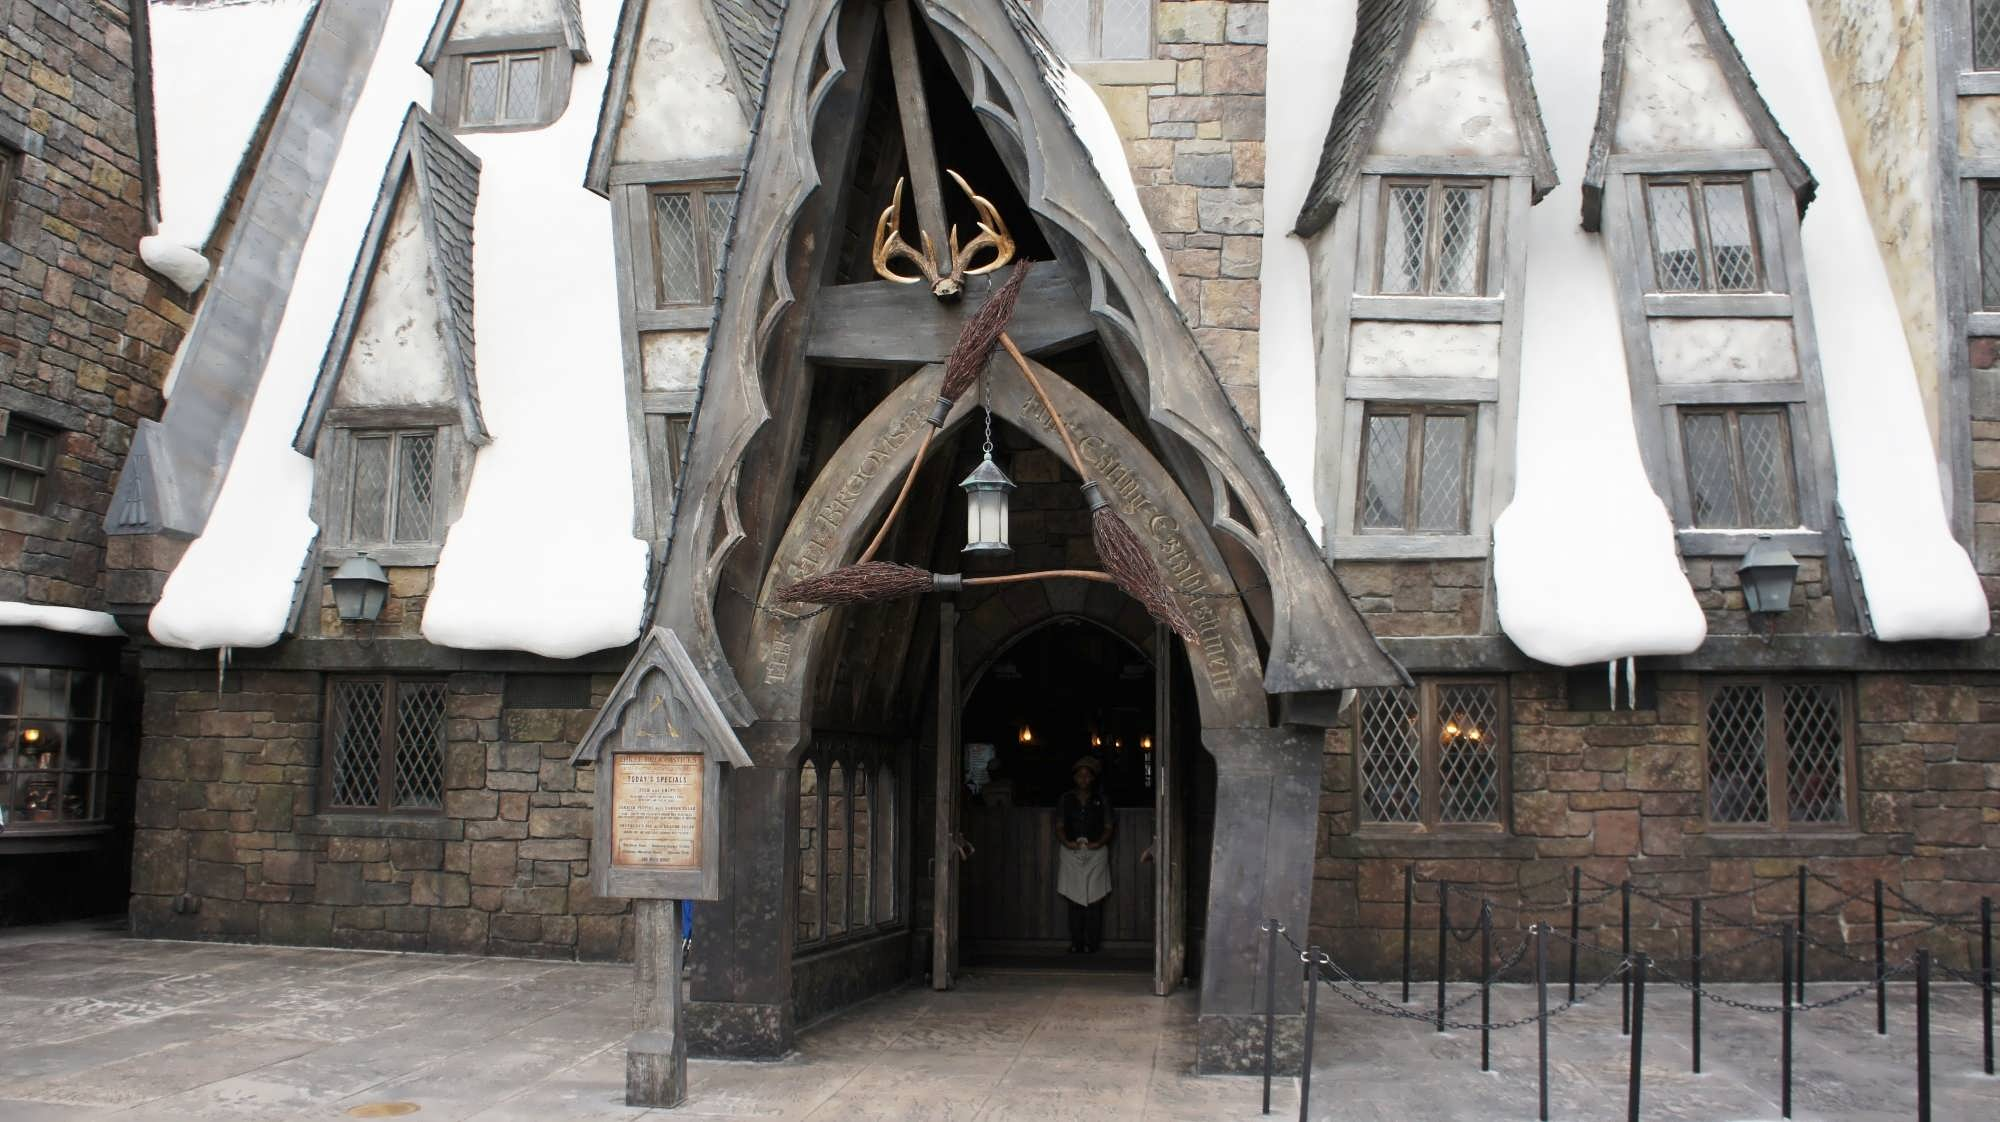 Entrance to Three Broomsticks at the Wizarding World of Harry Potter – Hogsmeade.